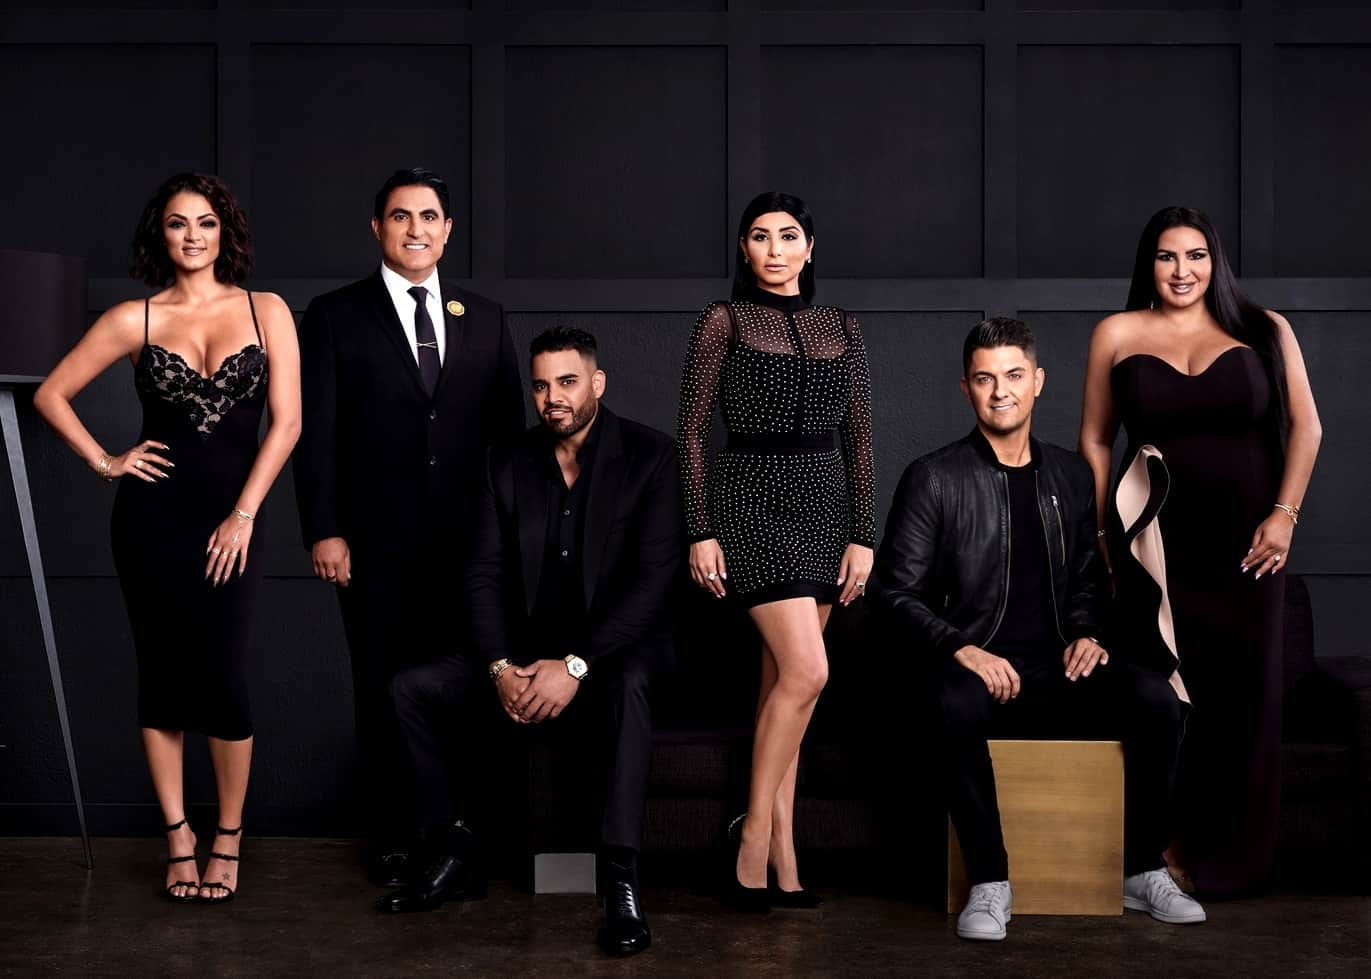 VIDEO: Watch Shahs of Sunset Season 9 Trailer! MJ and Reza Try to Repair Friendship After Restraining Order Drama, Mike and Girlfriend Paulina Show Cracks In Their Relationship, Plus Mike and Destiney Get Into Heated Argument